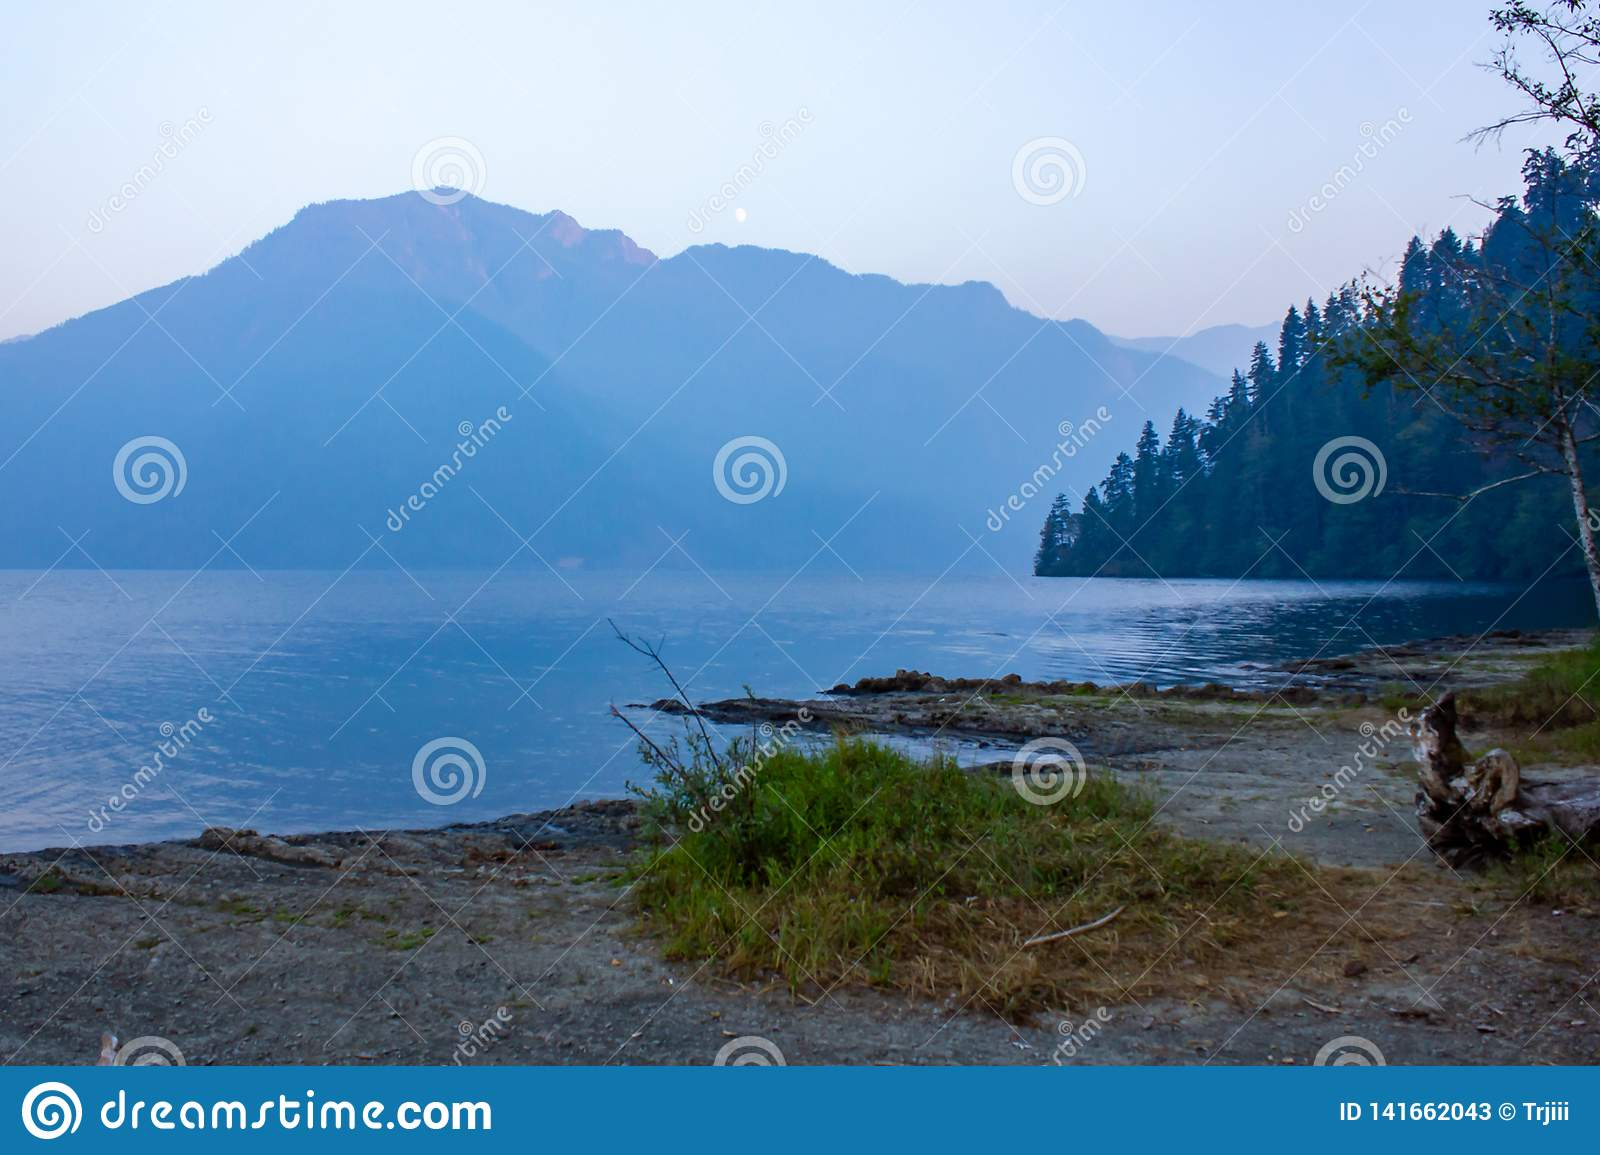 Green forest along side deep blue lake waters